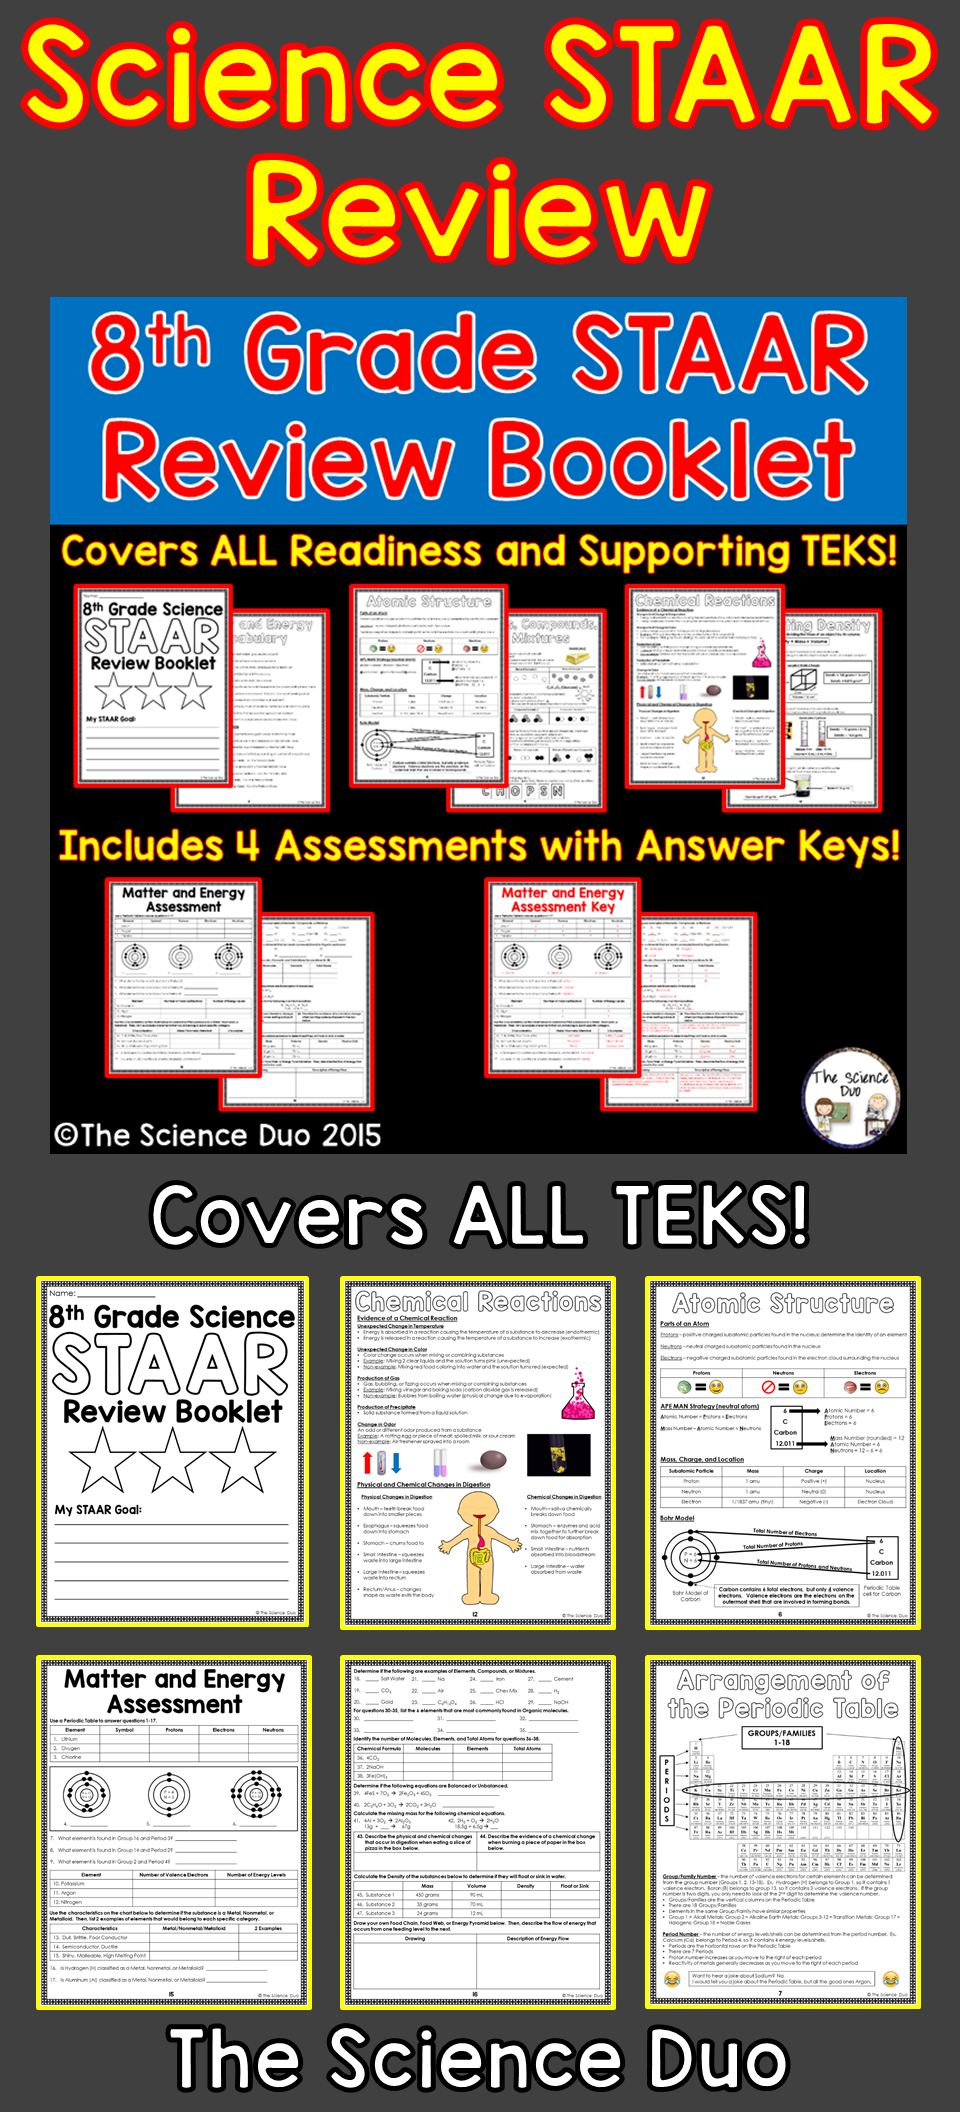 Staar science review booklet school and teacher staar 8th grade science booklet this booklet covers every readiness and supporting teks includes gamestrikefo Images